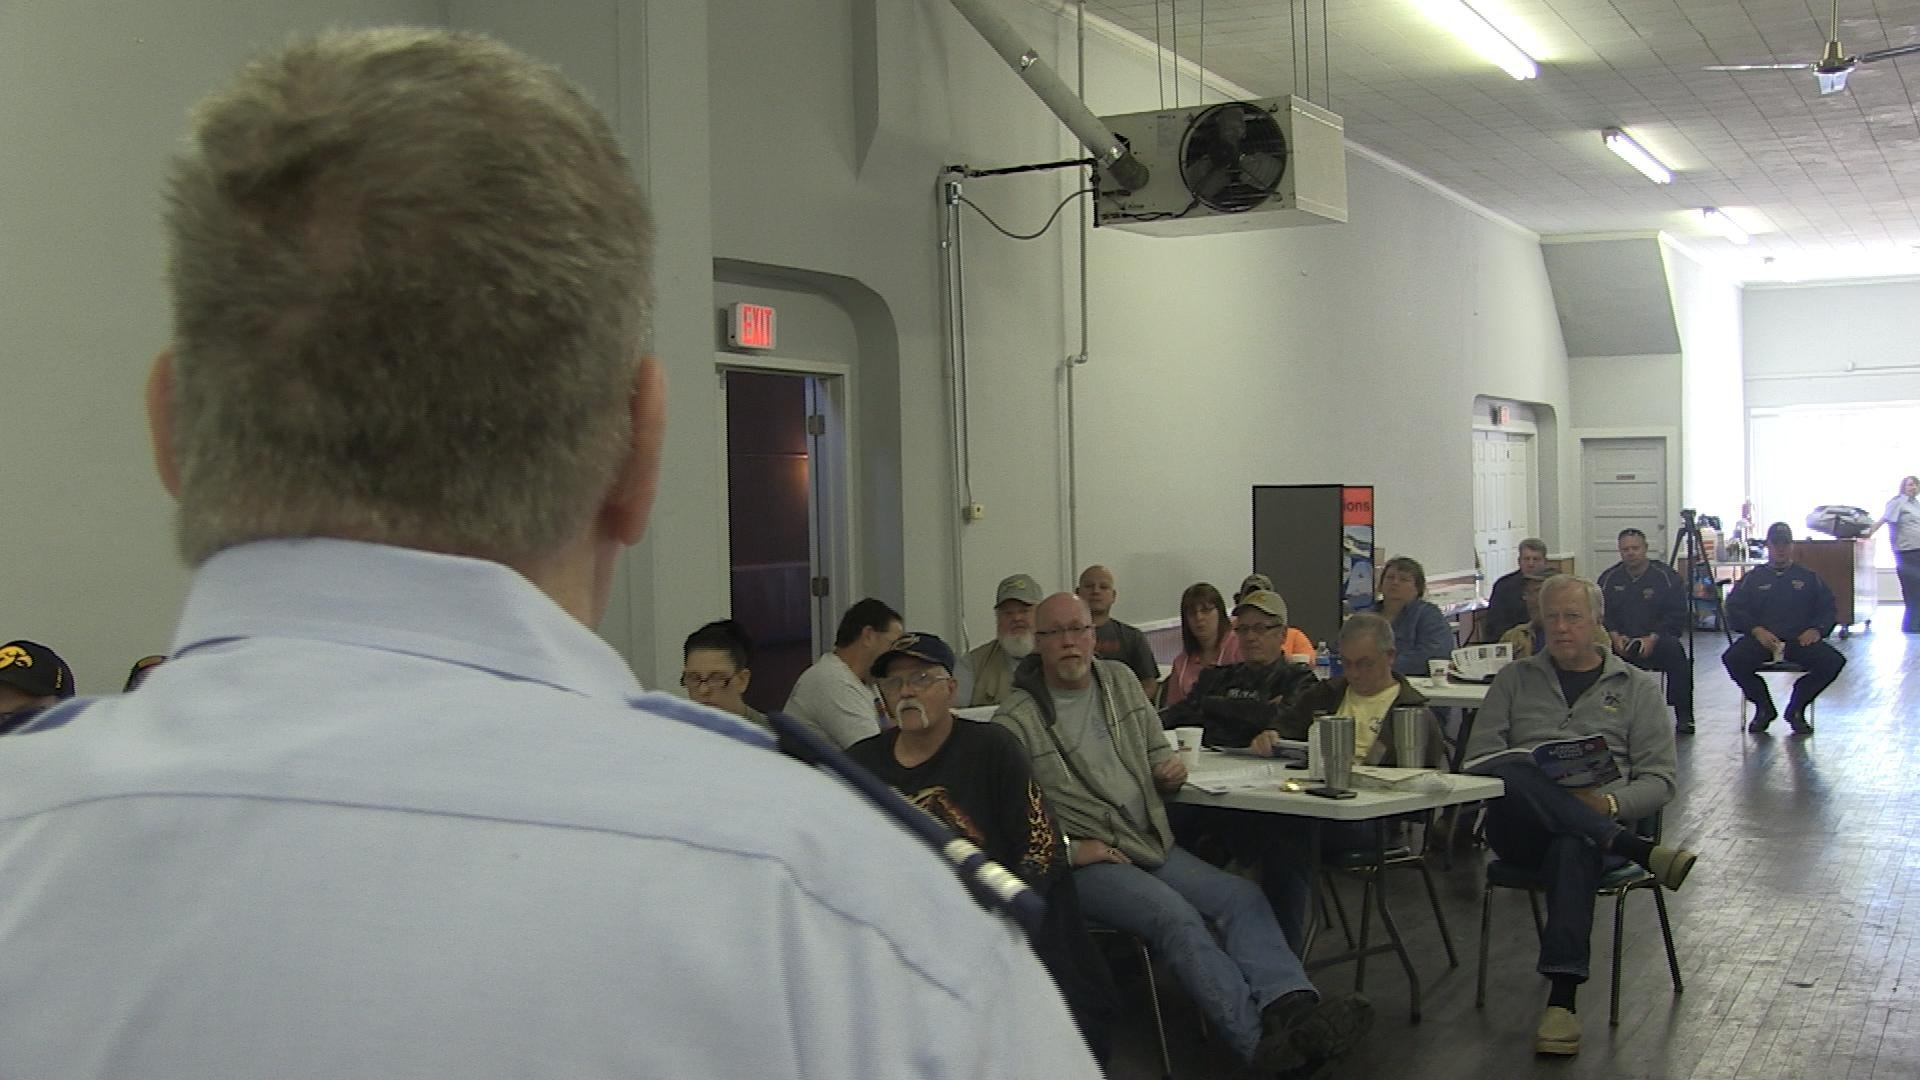 A U.S. Coast Guard Auxiliary member speaks to roughly 50 boaters at a safety class in Keokuk in April.